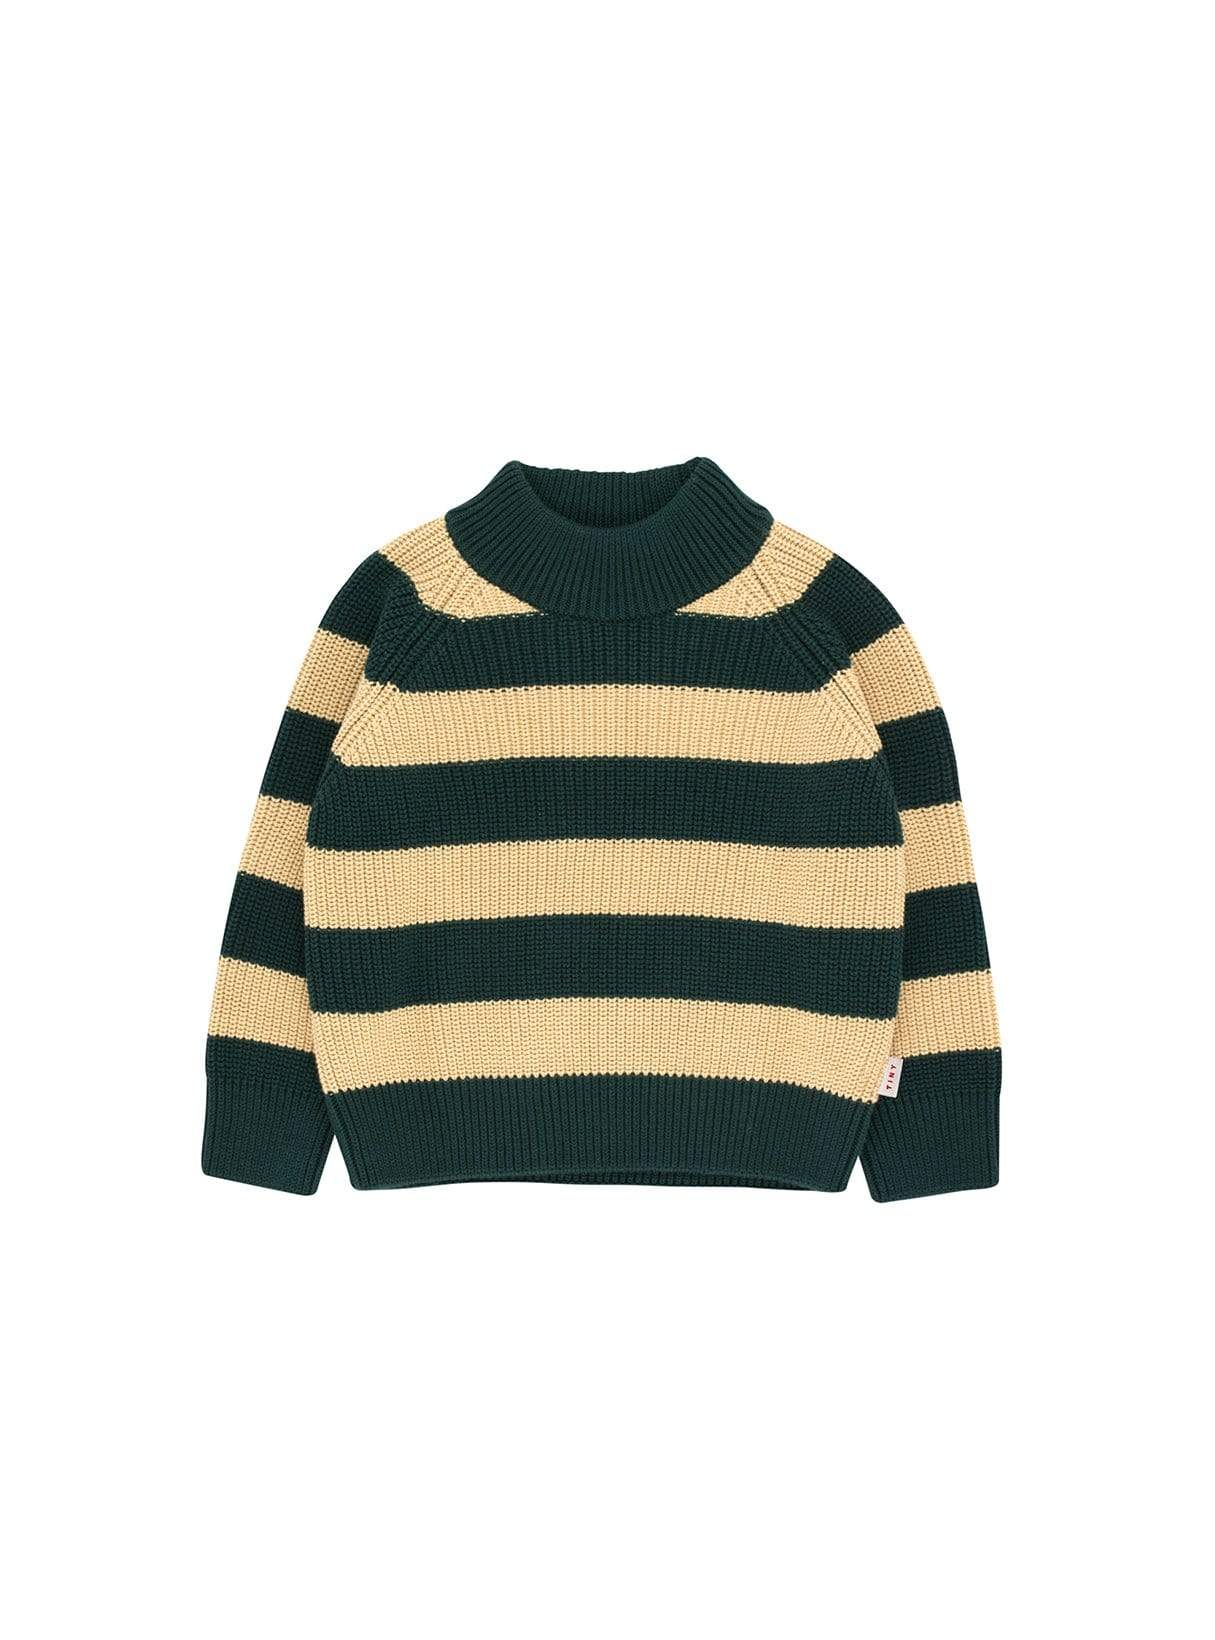 Stripes - sweater - bottle green/sand